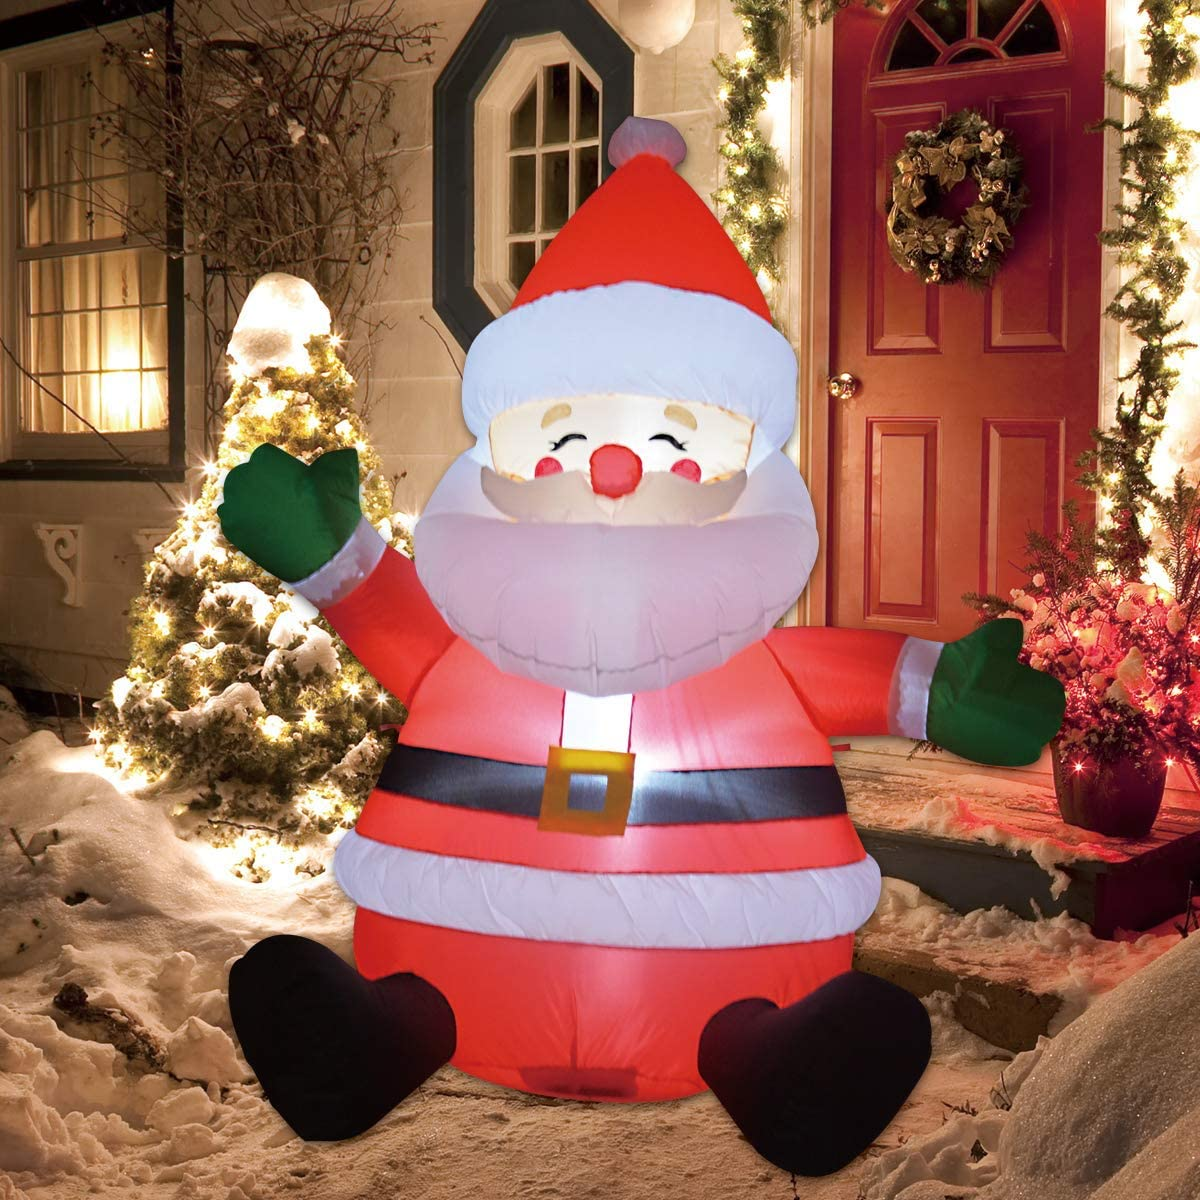 GOOSH 20 FT Christmas Inflatable Outdoor Sitting Santa Claus Happy Face,  Blow Up Yard Decoration Clearance with LED Lights Built in for ...